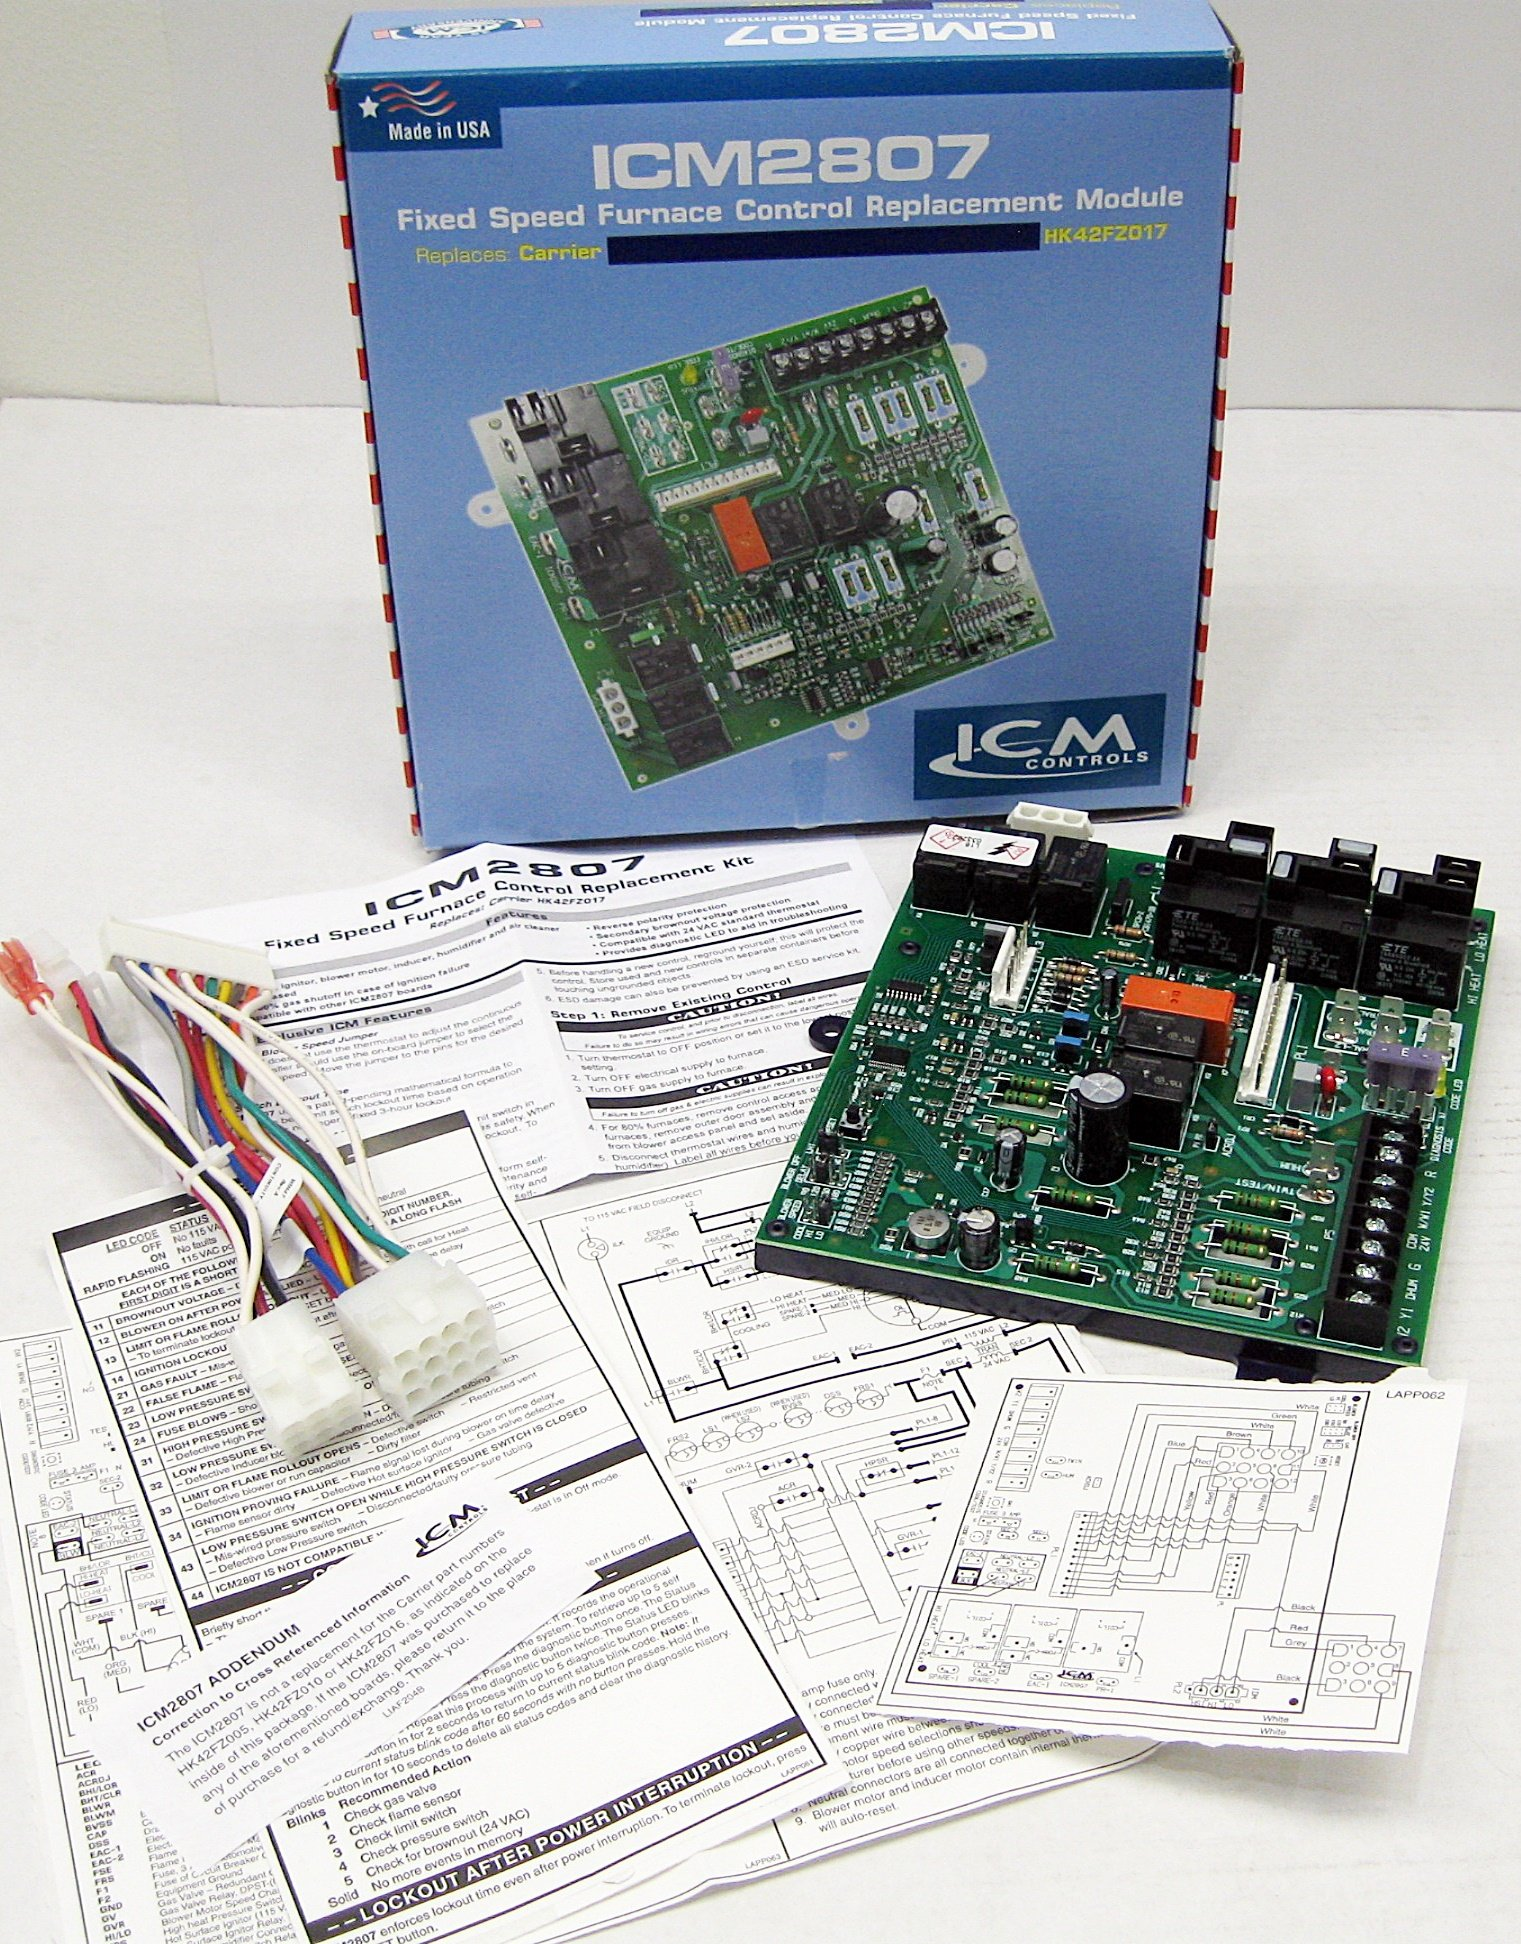 ICM Controls ICM2807 Furnace Control Board OEM Replacement Carrier for 325879-751 and HK42FZ017